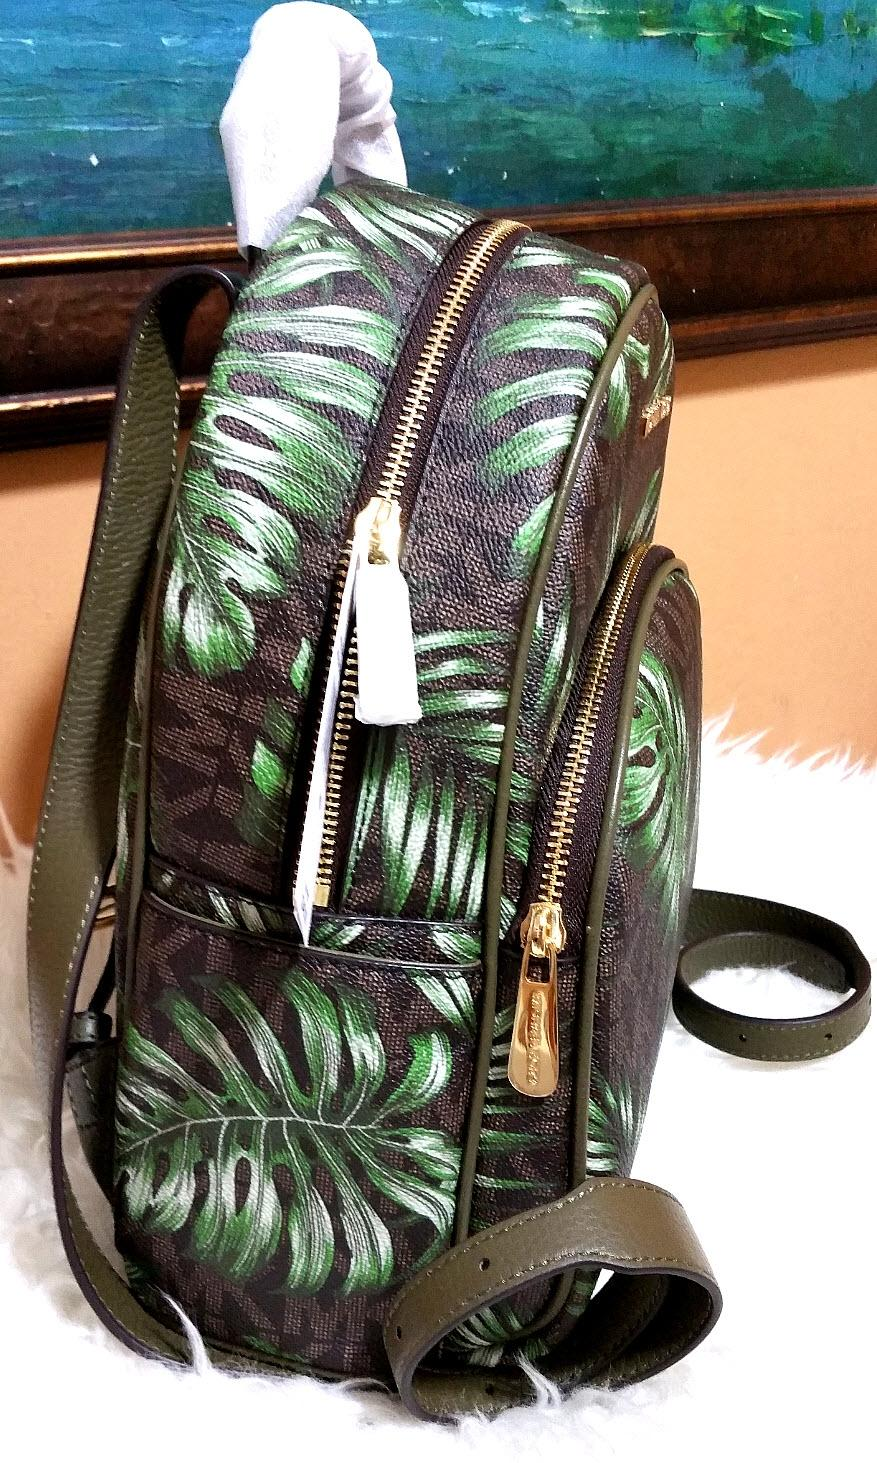 195f0bba76ebe9 reduced michael kors abbey medium palm tree wallet set brown olive  signature pvc leather backpack tradesy